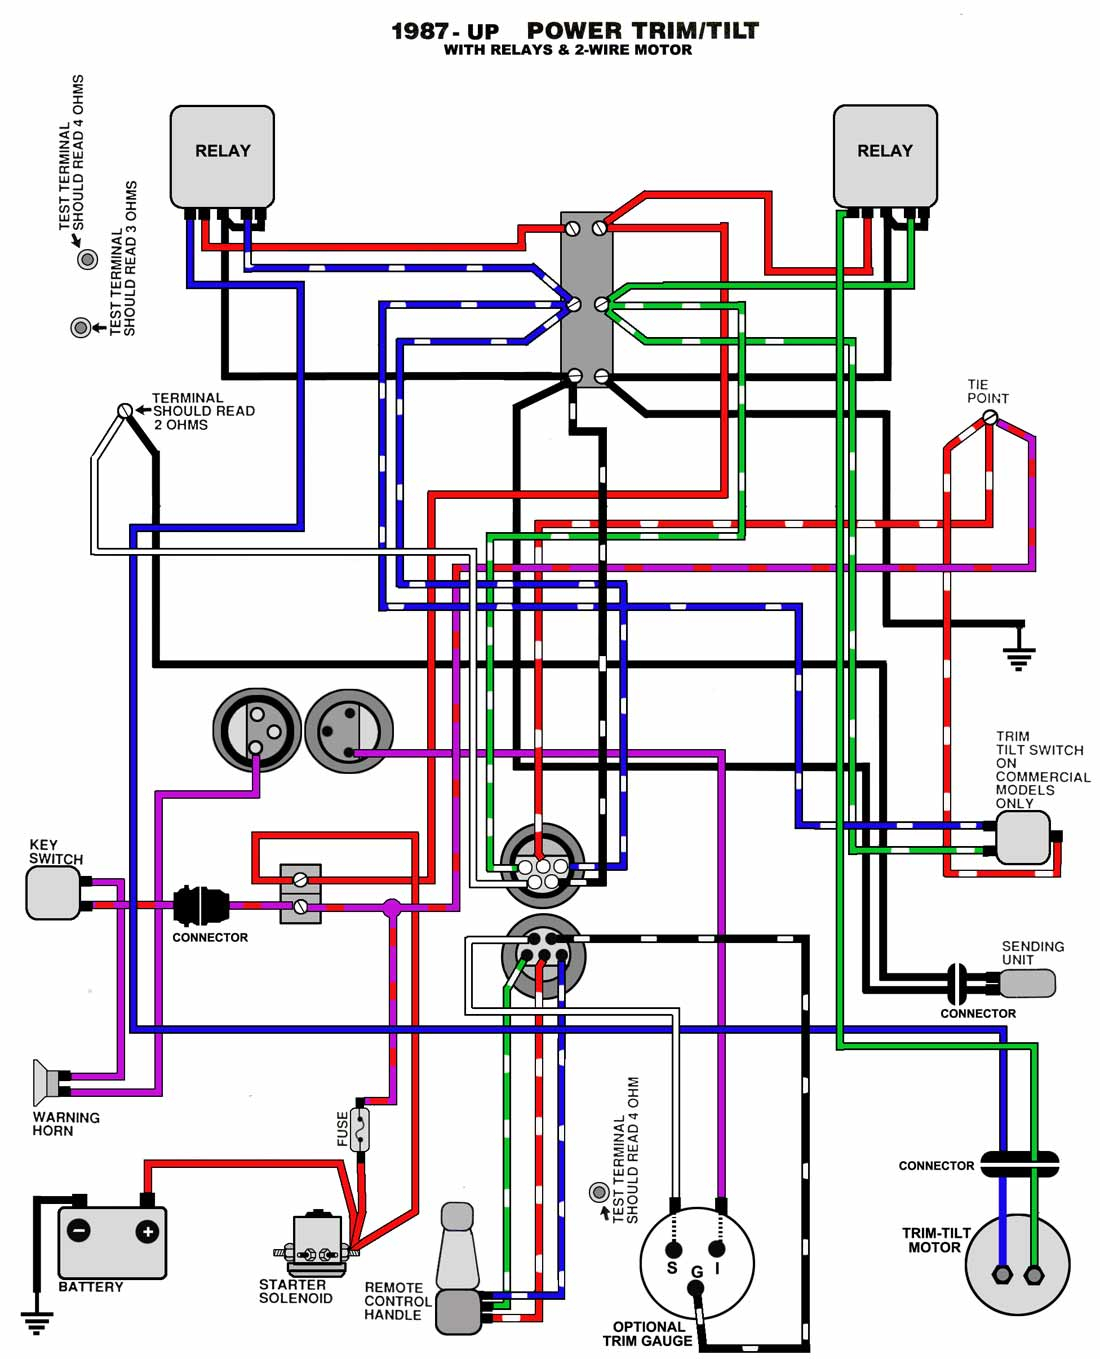 mercruiser gauges wiring data wiring diagram schemamercruiser gauge wiring diagram wiring library mercruiser oil pressure gauge wiring mercruiser gauge wiring diagram